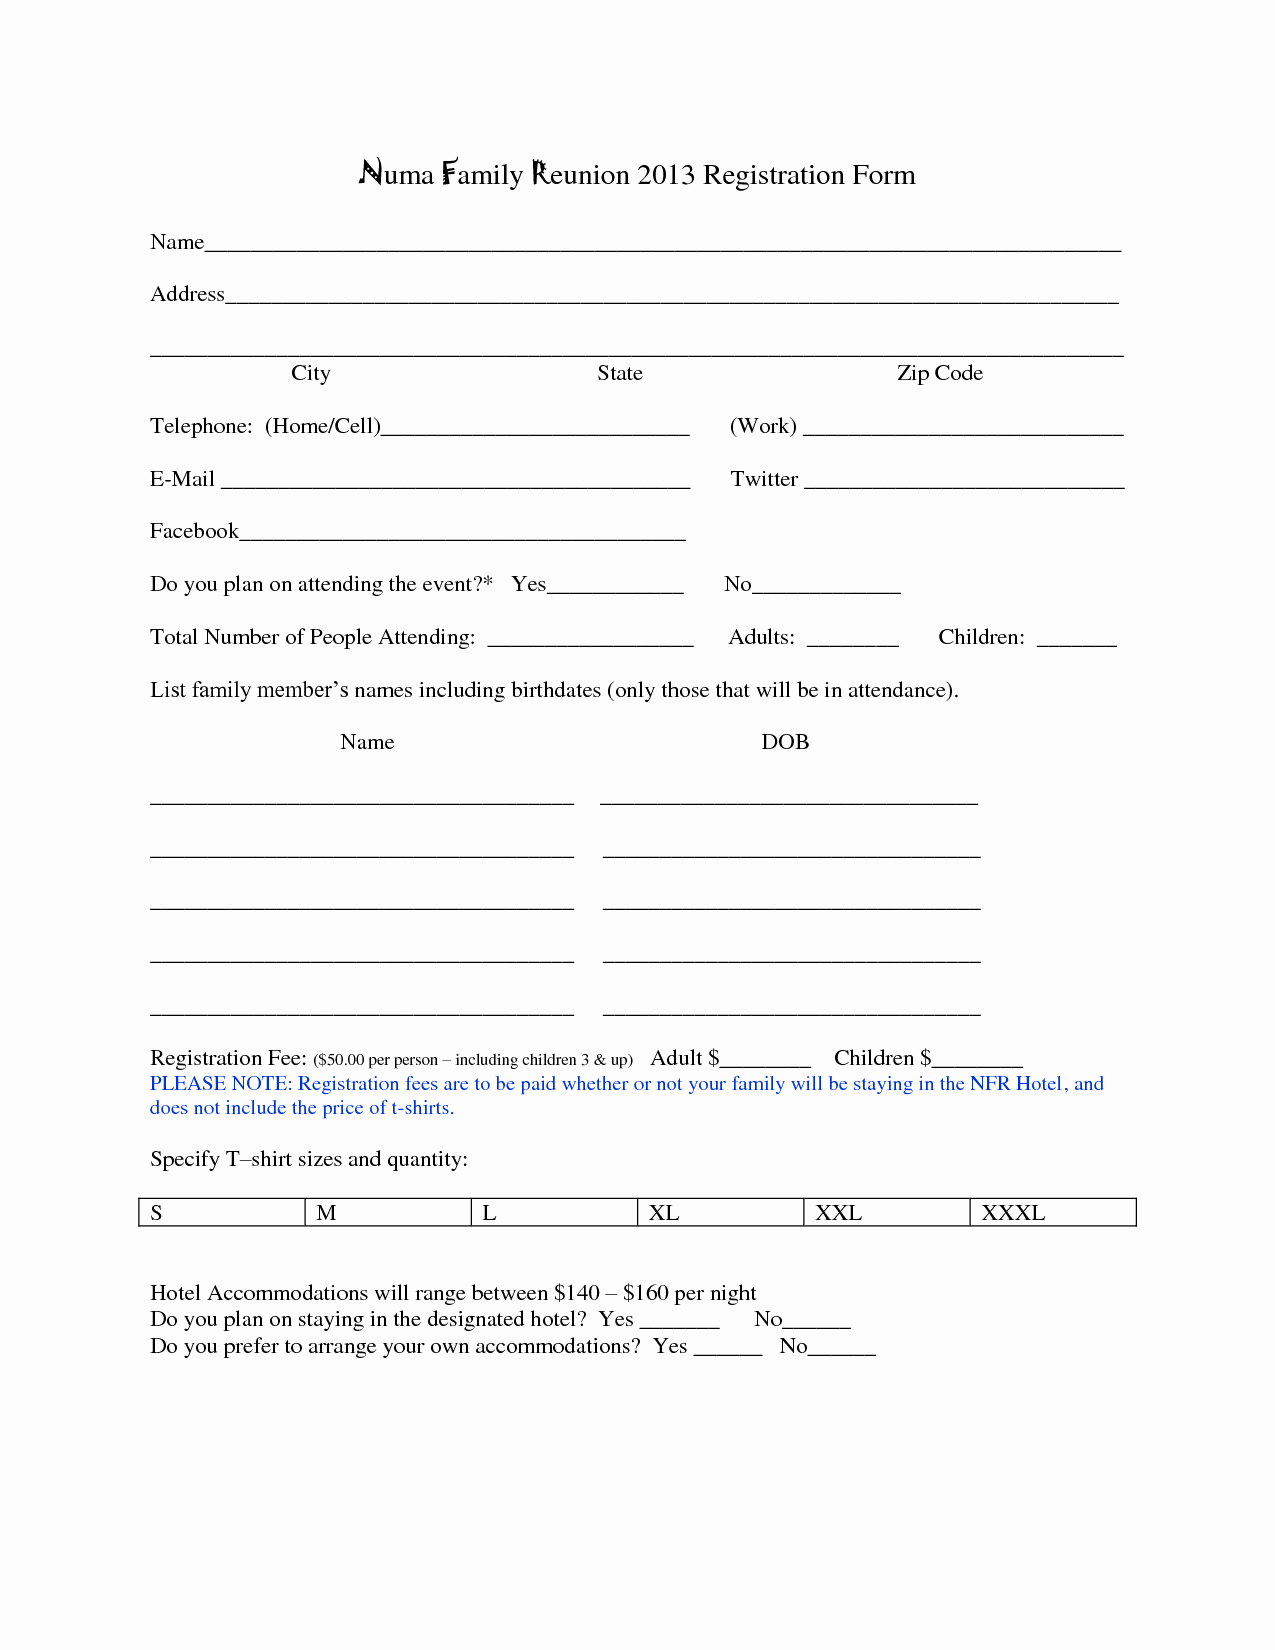 Registration forms Template Word Fresh Family Reunion Registration form Template